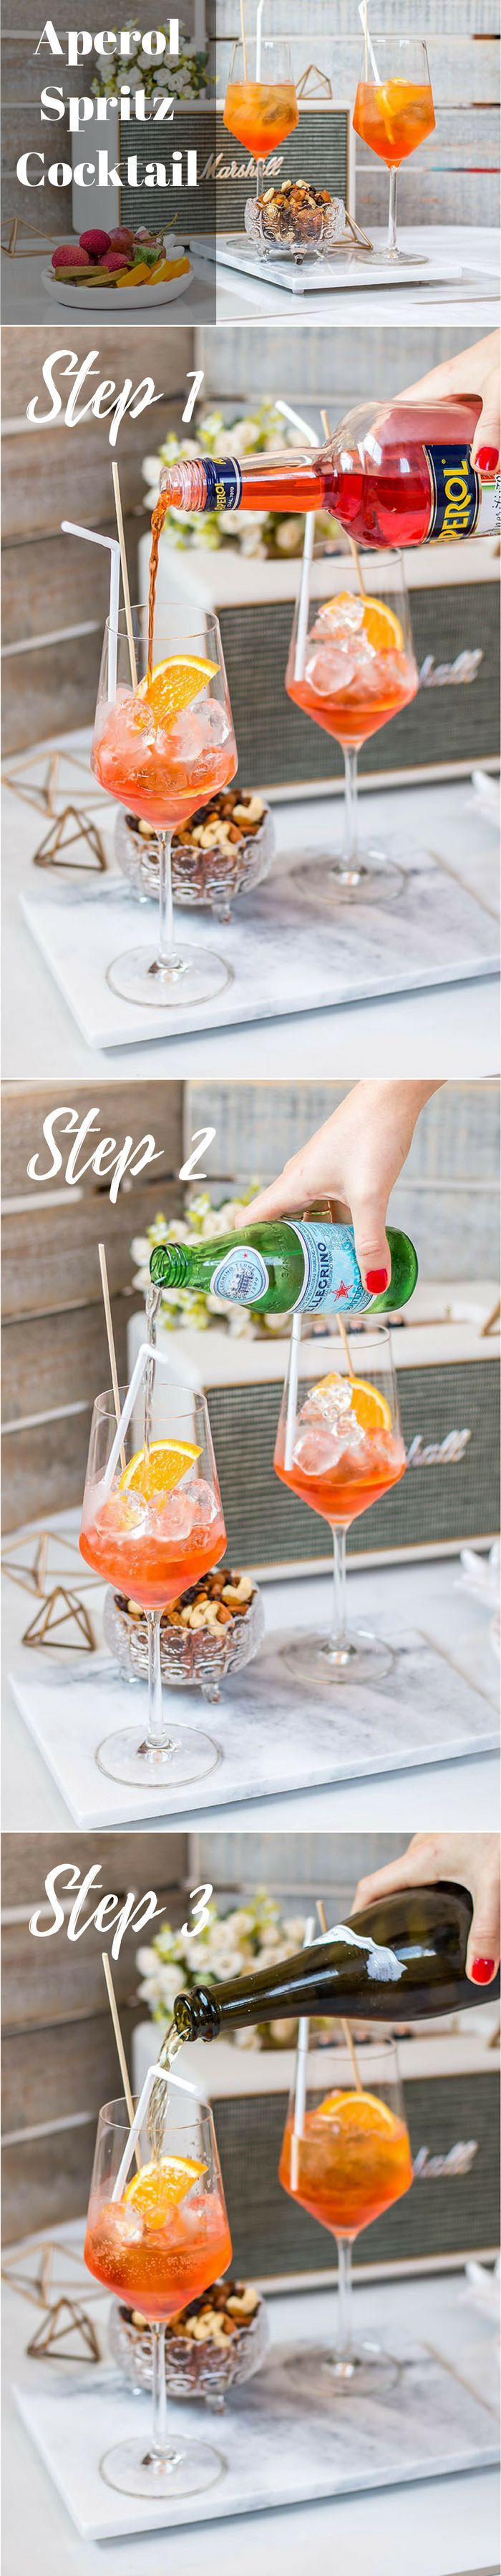 Aperol Spritz recipe - how to make the Italian refreshing & easy summer cocktail at home - Click on the photo for the full recipe @ www.hedonistit.com